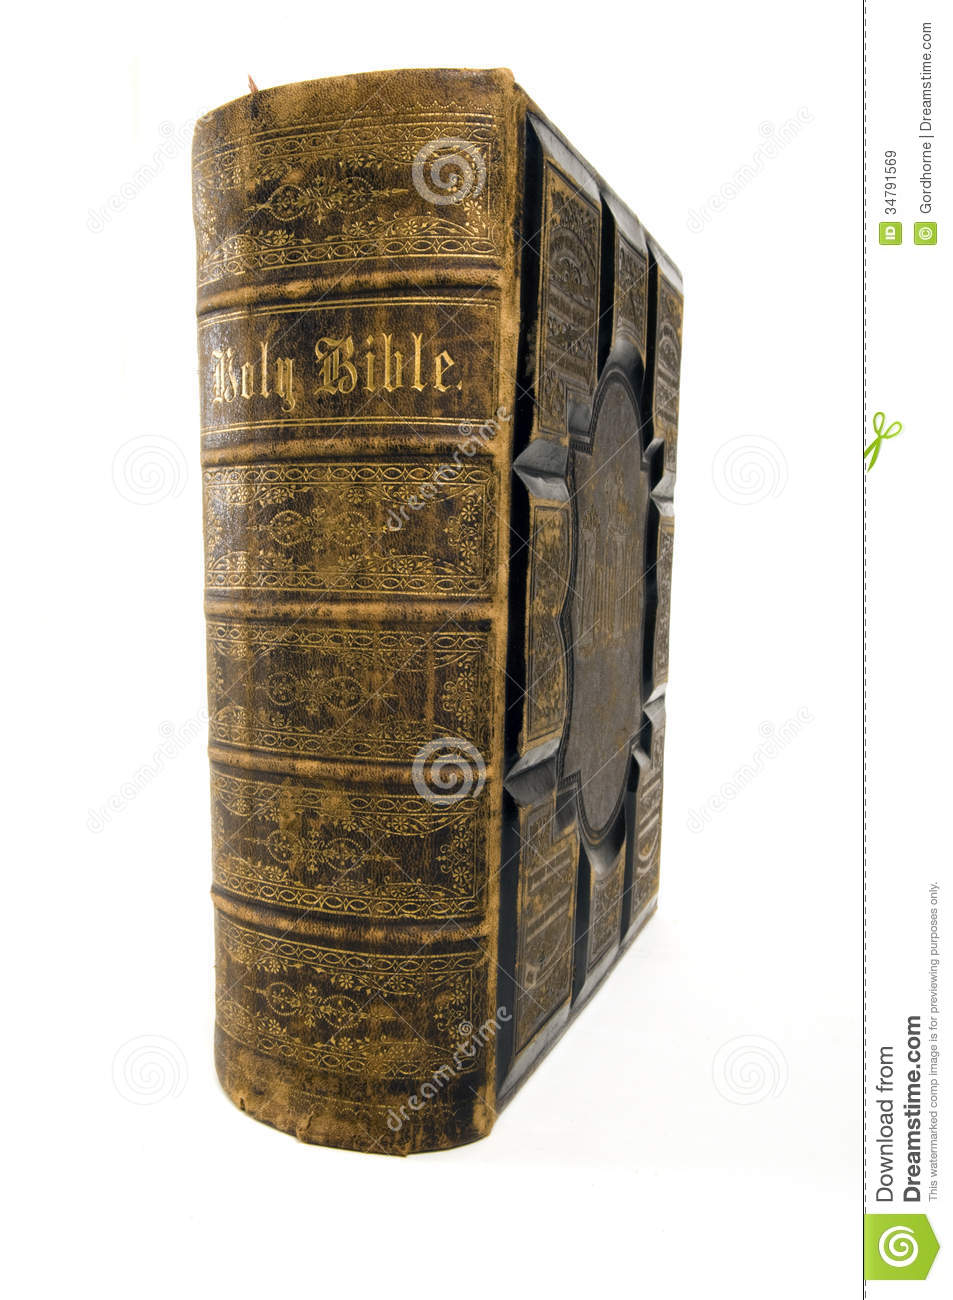 Vintage Leather Look Jeremiah Verse Bible Book Cover Large: Antique Bible Stock Image. Image Of Black, Holy